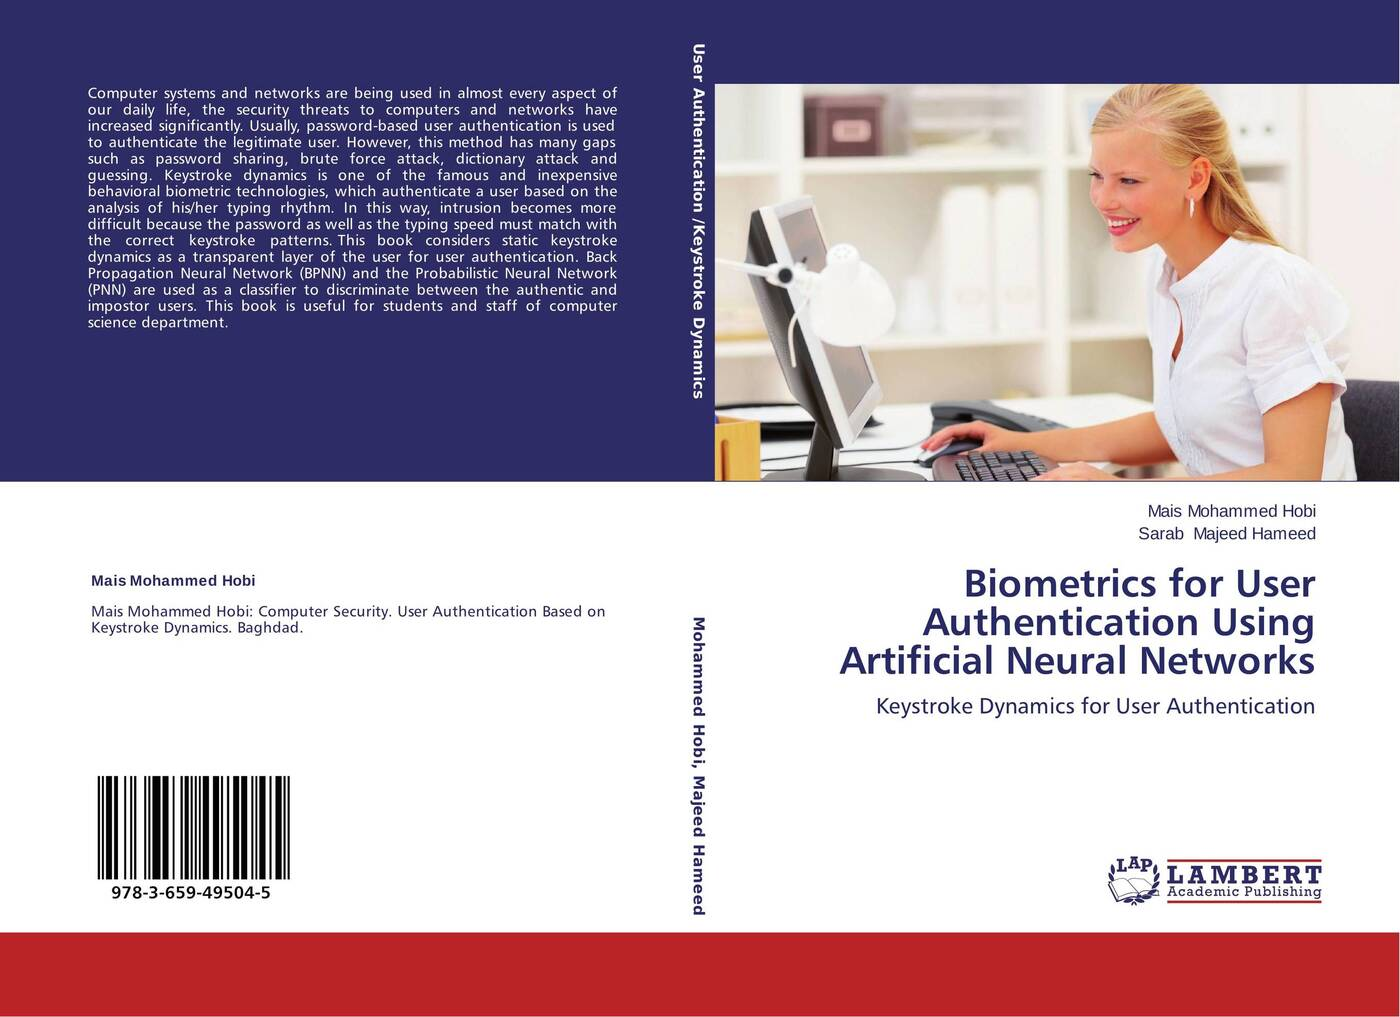 Mais Mohammed Hobi and Sarab Majeed Hameed Biometrics for User Authentication Using Artificial Neural Networks